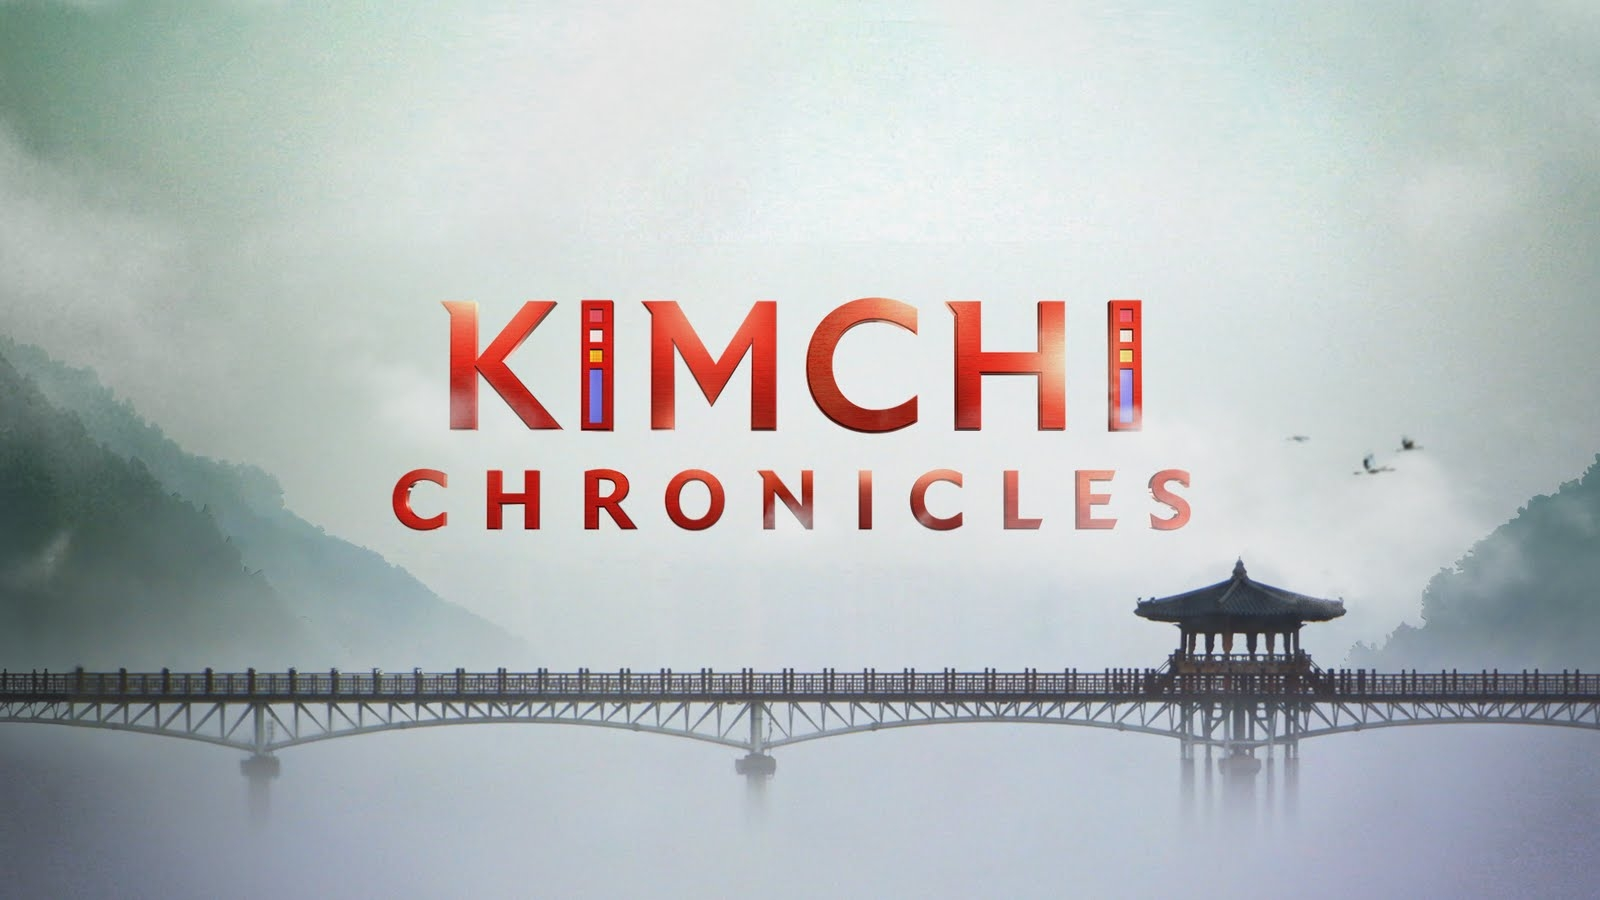 The Kimchi Chronicles - PBS